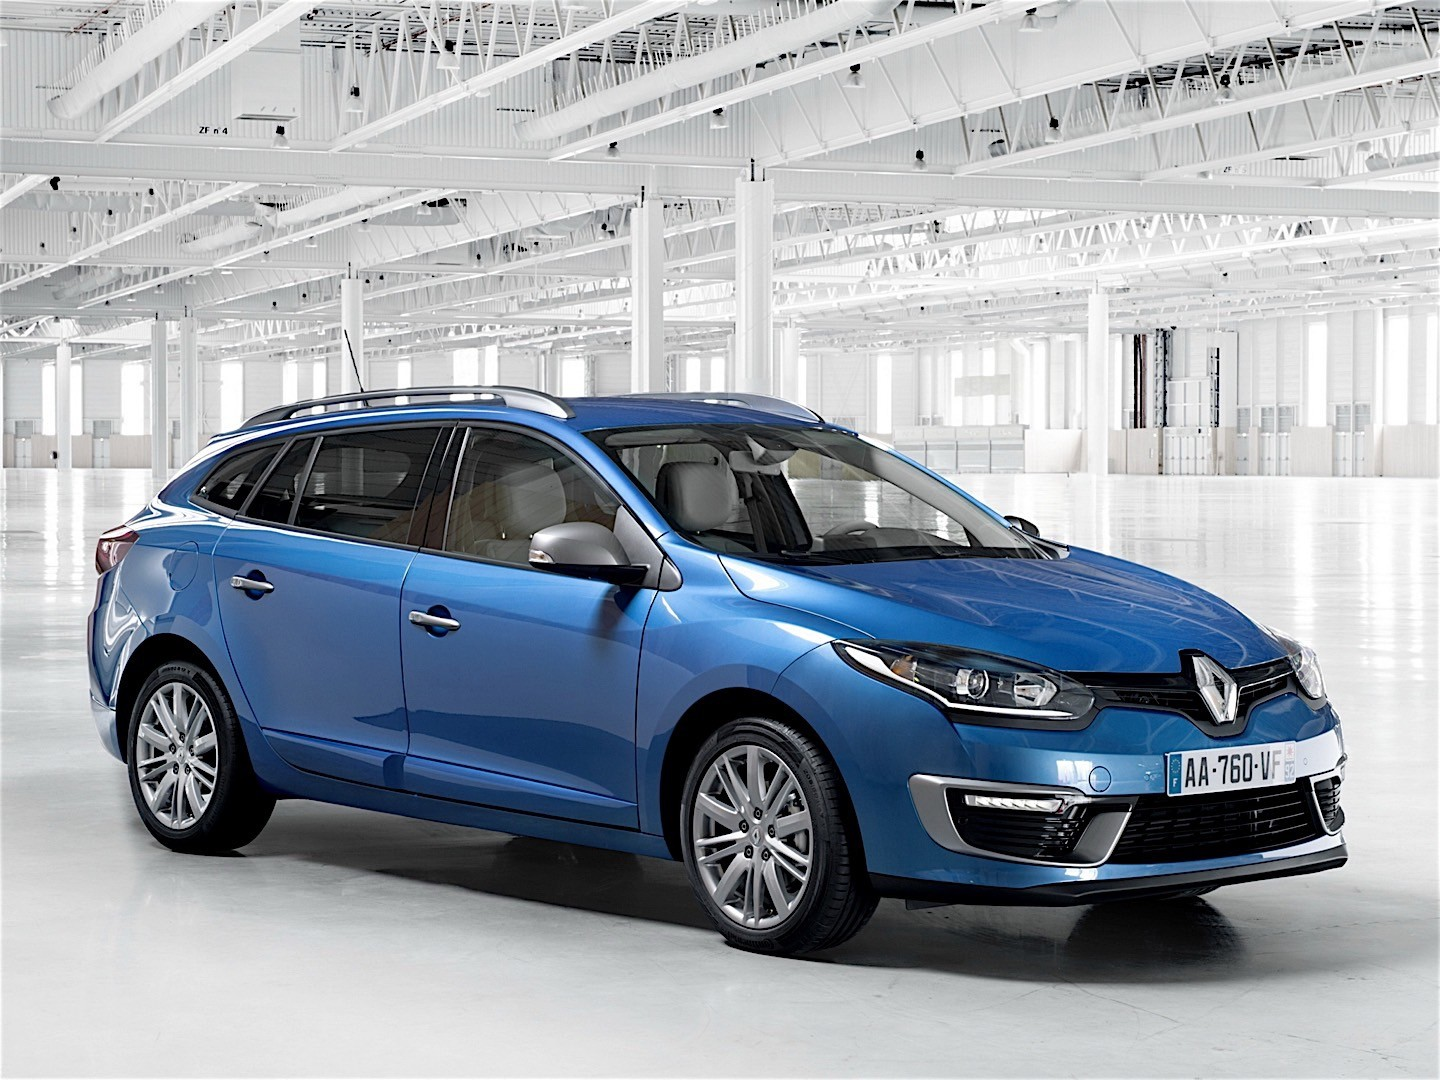 renault megane estate specs photos 2014 2015 2016 autoevolution. Black Bedroom Furniture Sets. Home Design Ideas